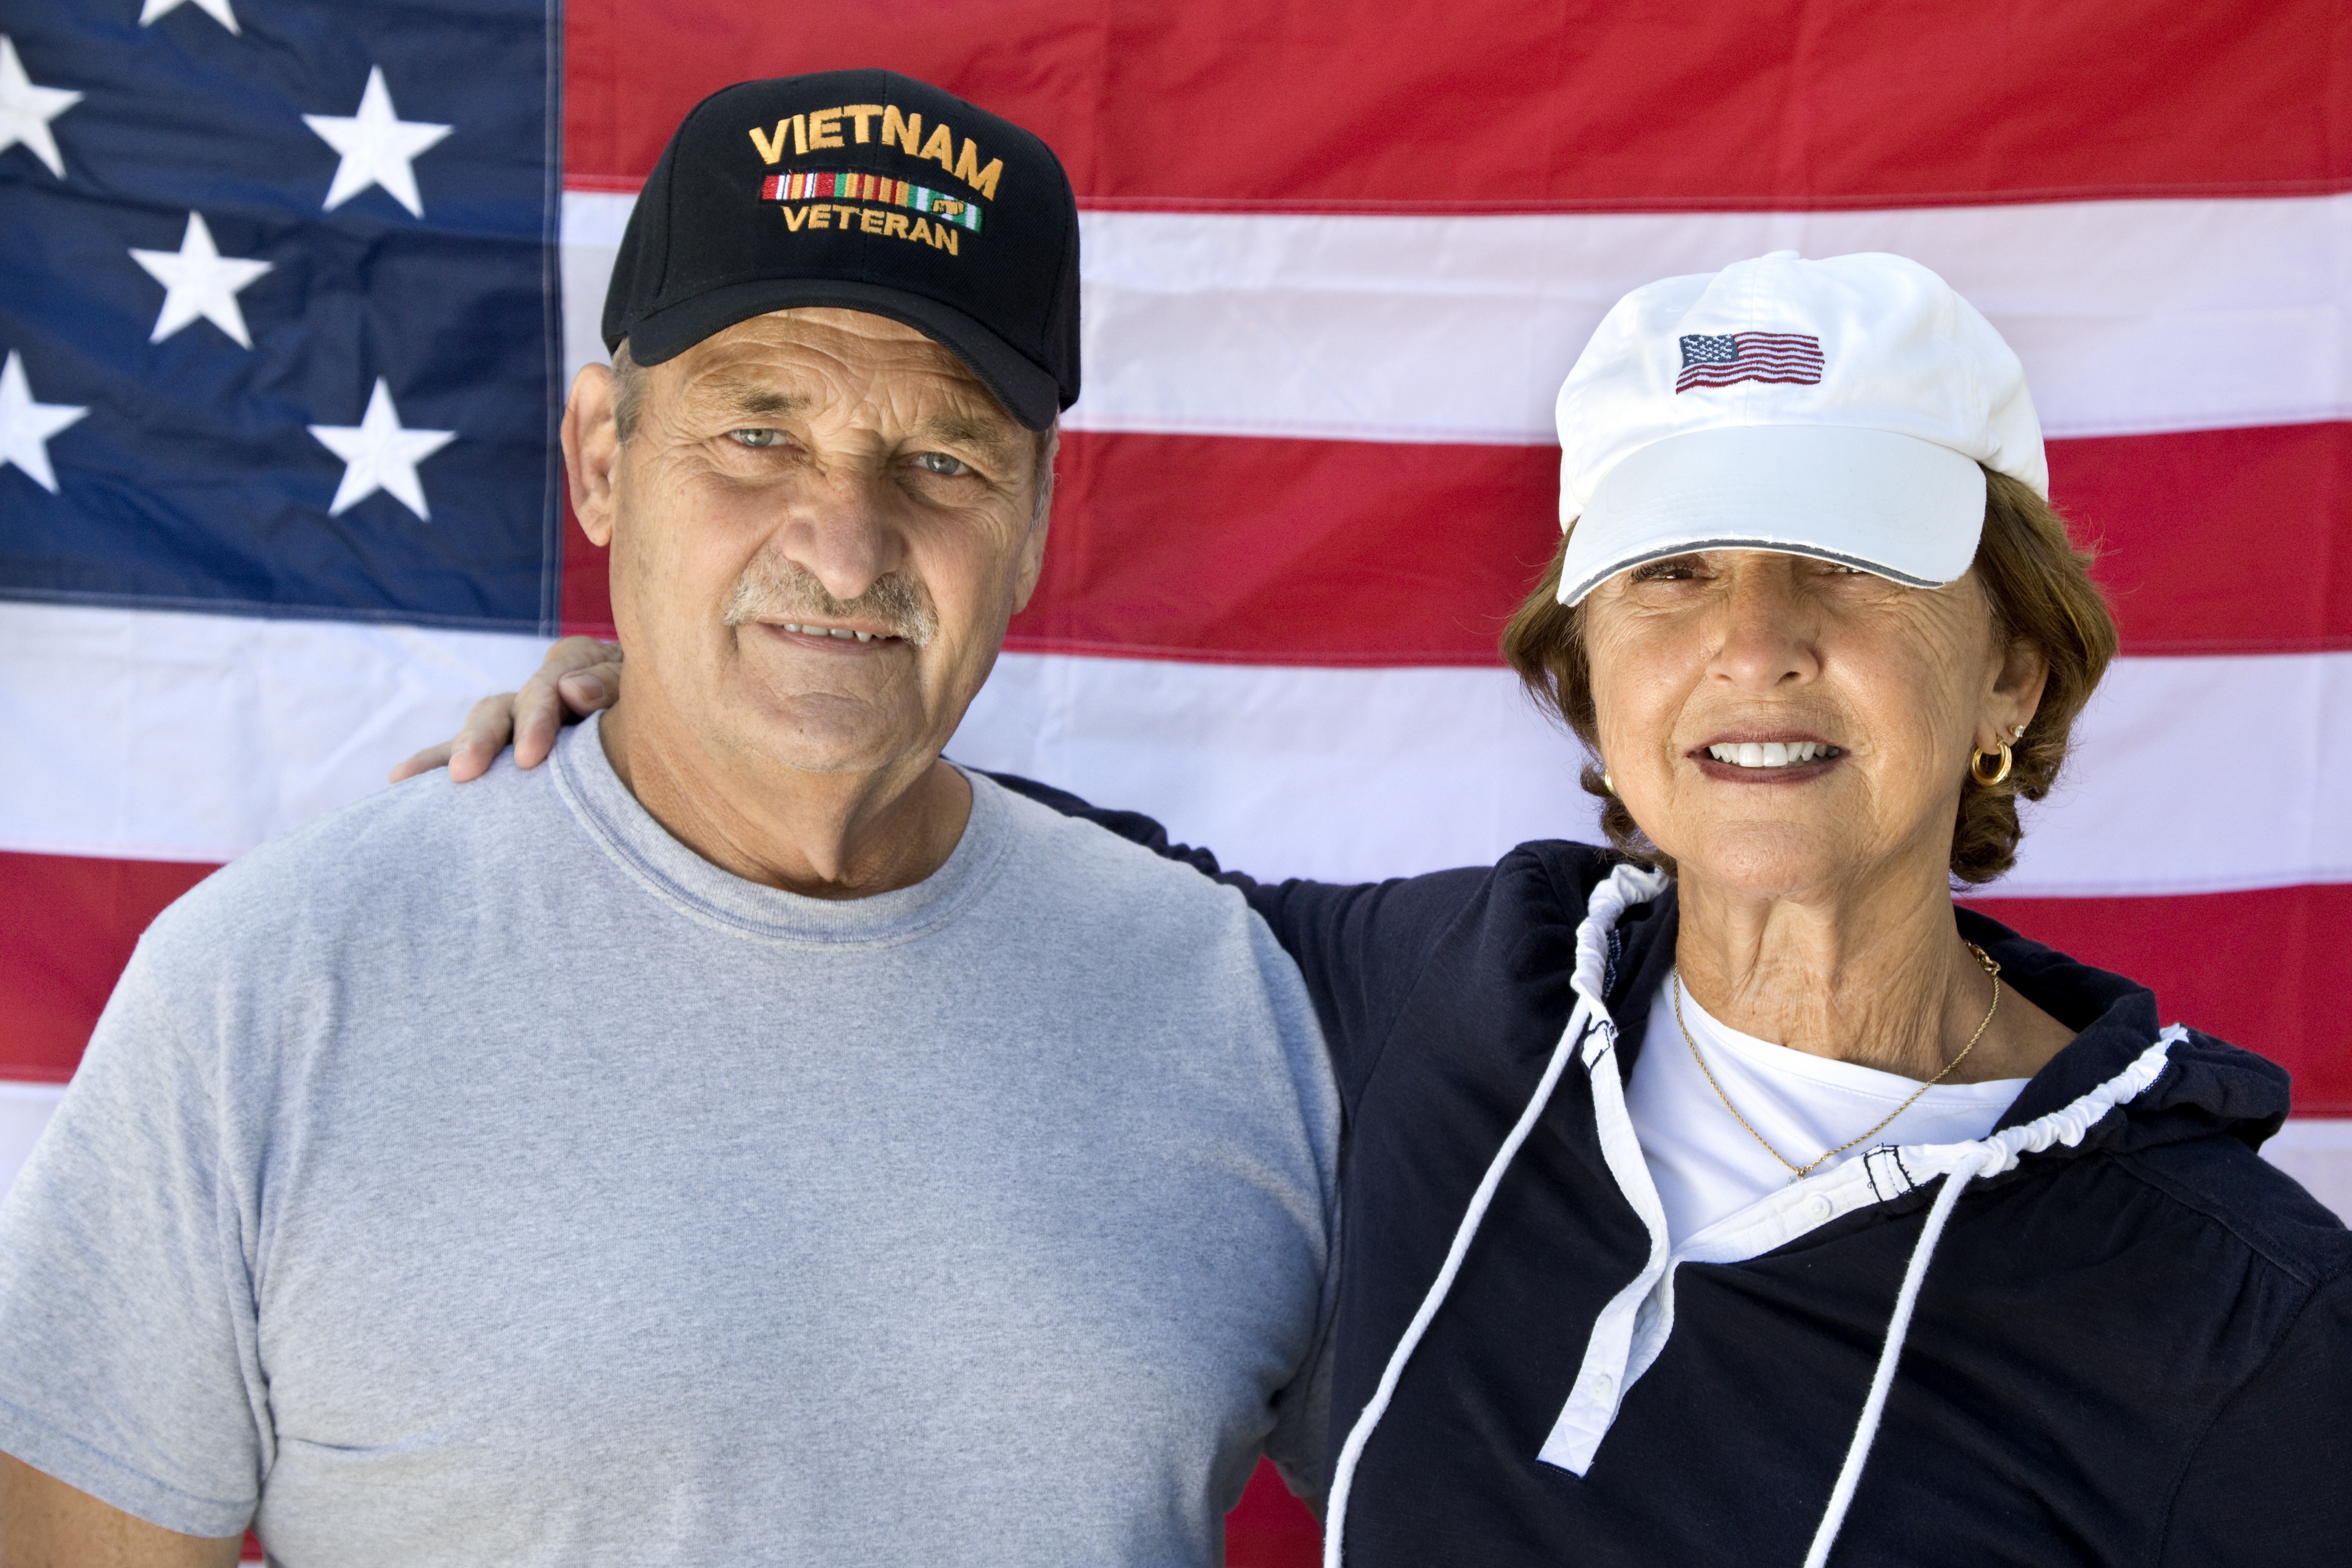 Vietnam Veteran and Wife looking at camera with American Flag in background